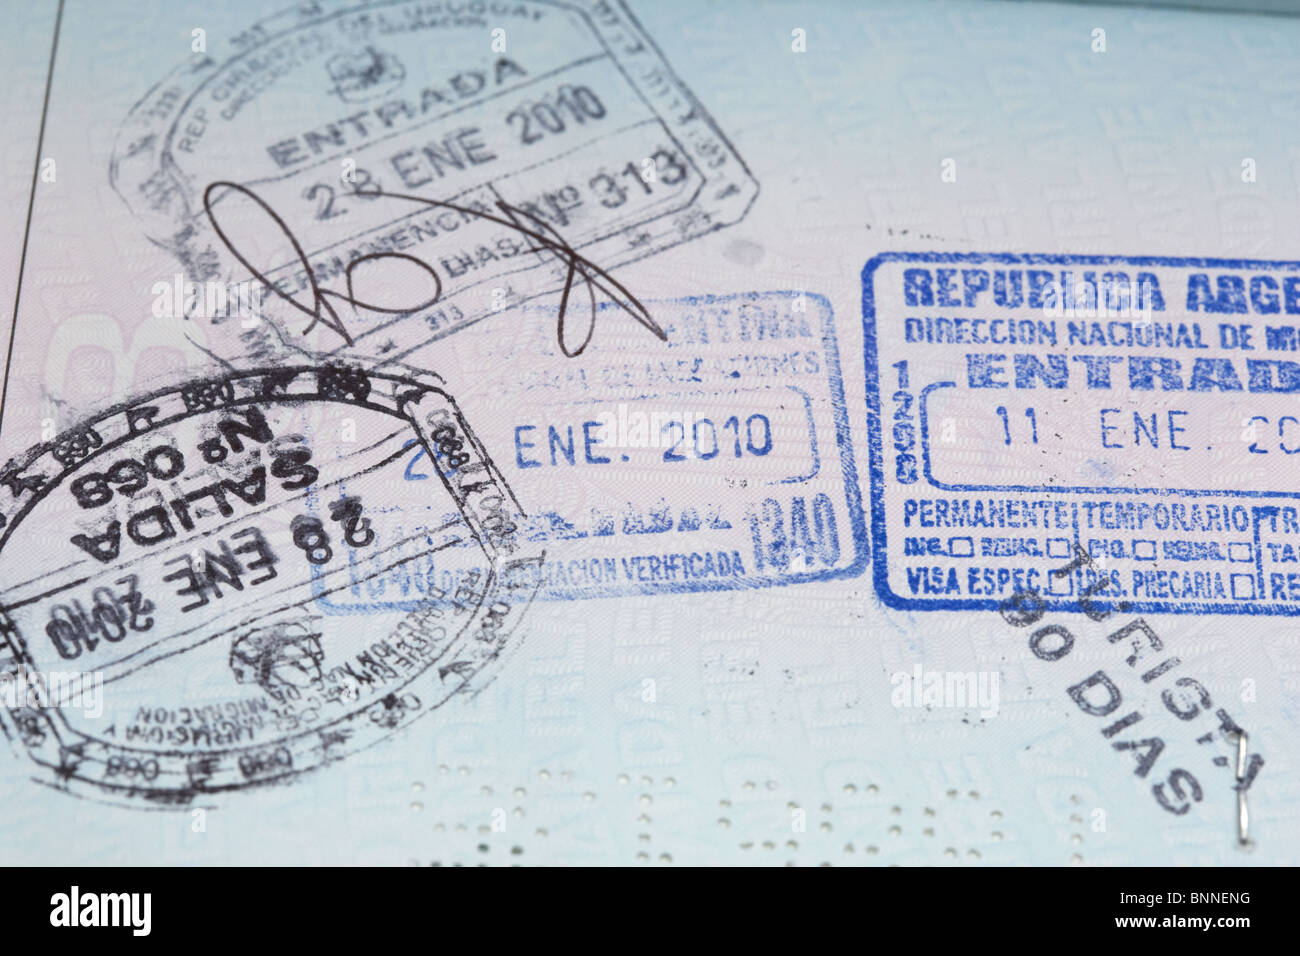 republic of argentina and uruguay entry and exit visa stamps in an eu irish passport - Stock Image